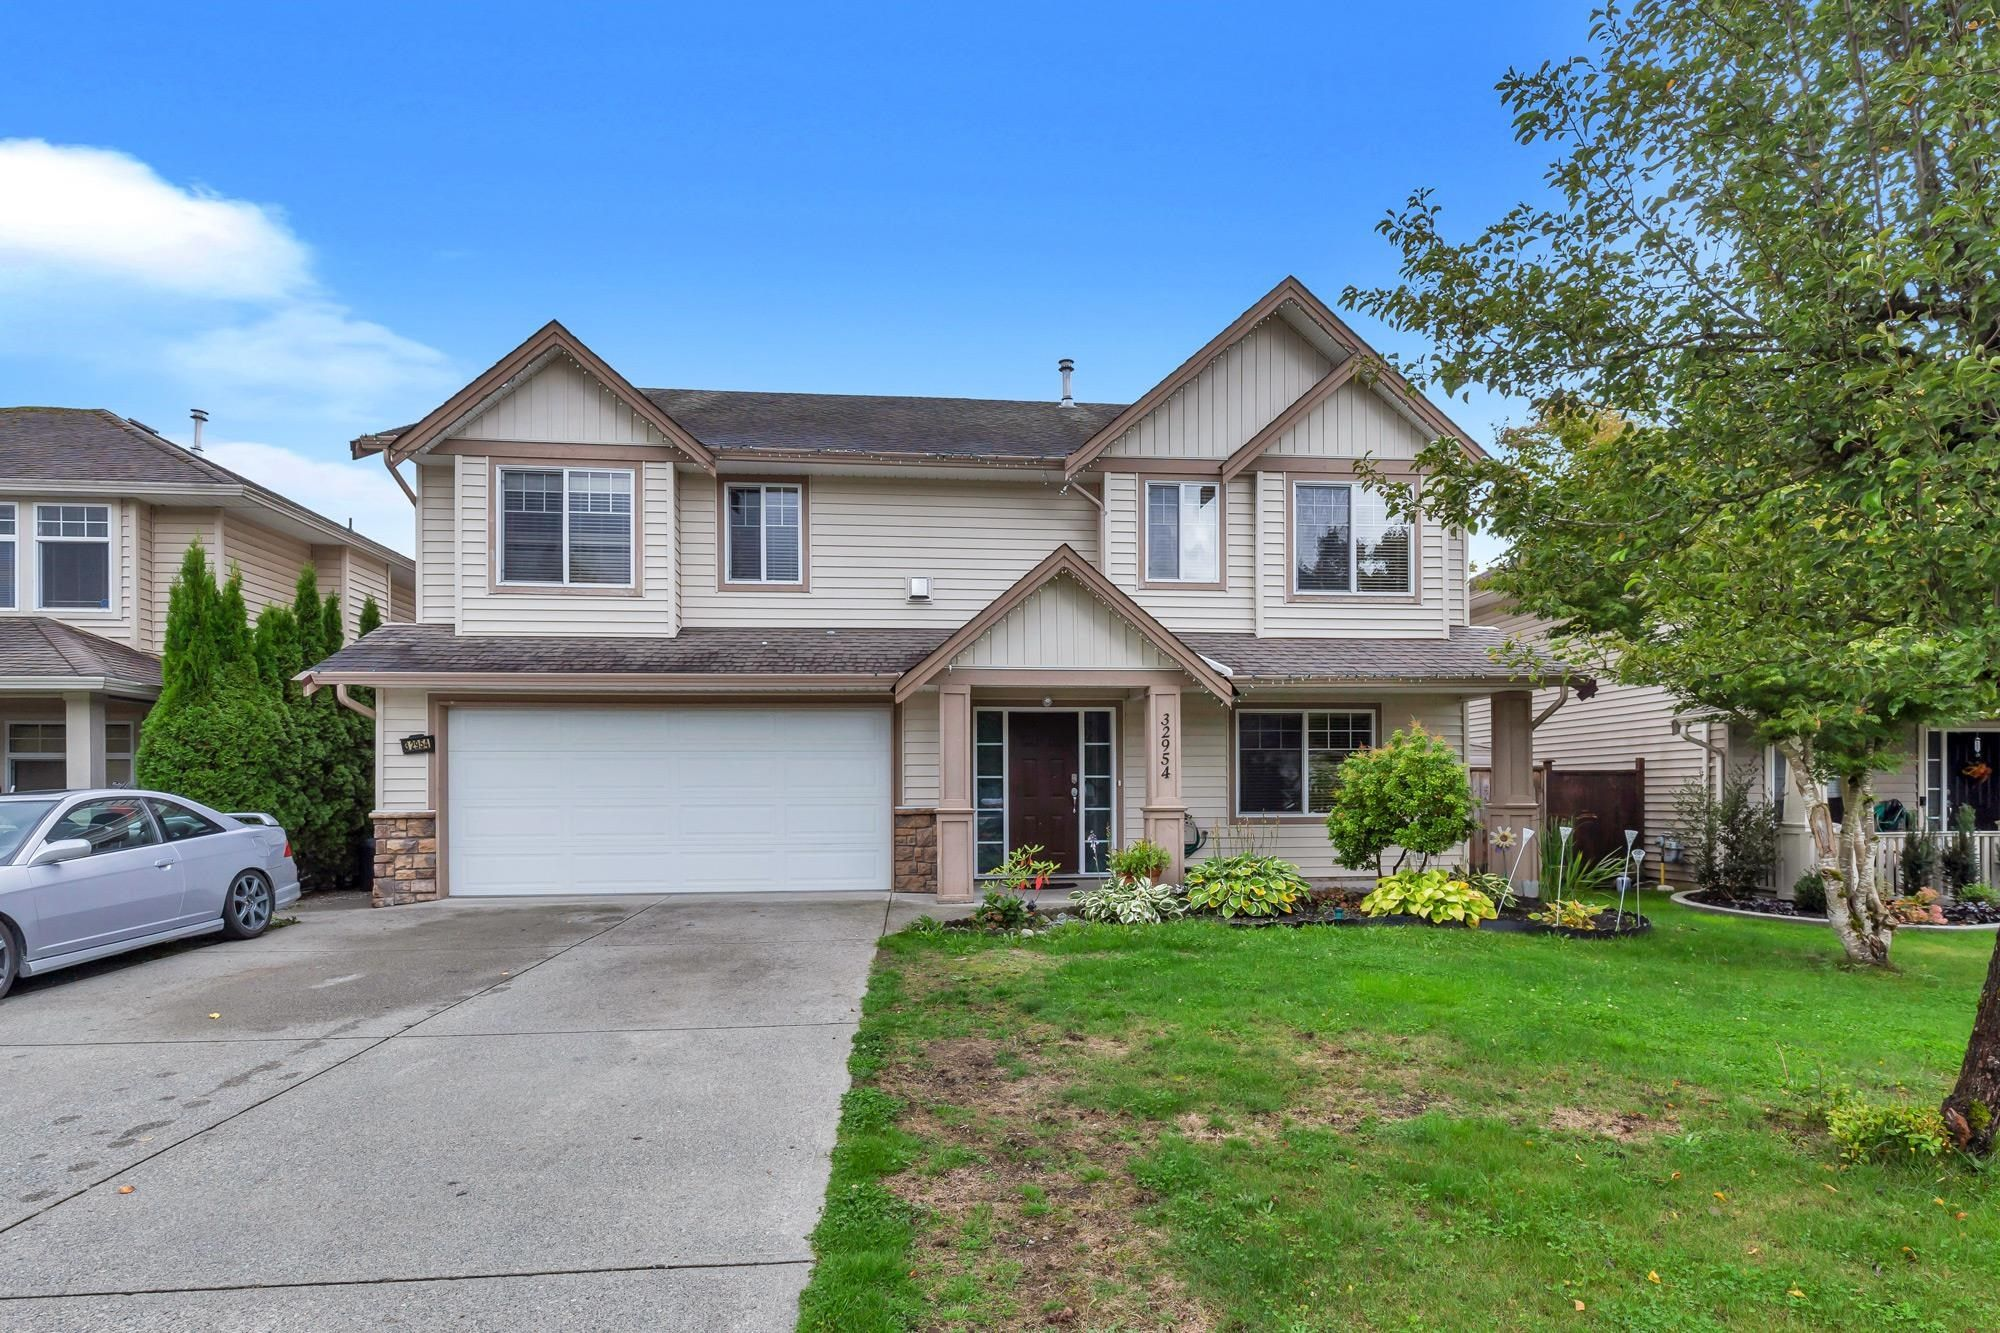 """Main Photo: 32954 PHELPS Avenue in Mission: Mission BC House for sale in """"CEDAR VALLEY ESTATES"""" : MLS®# R2621678"""